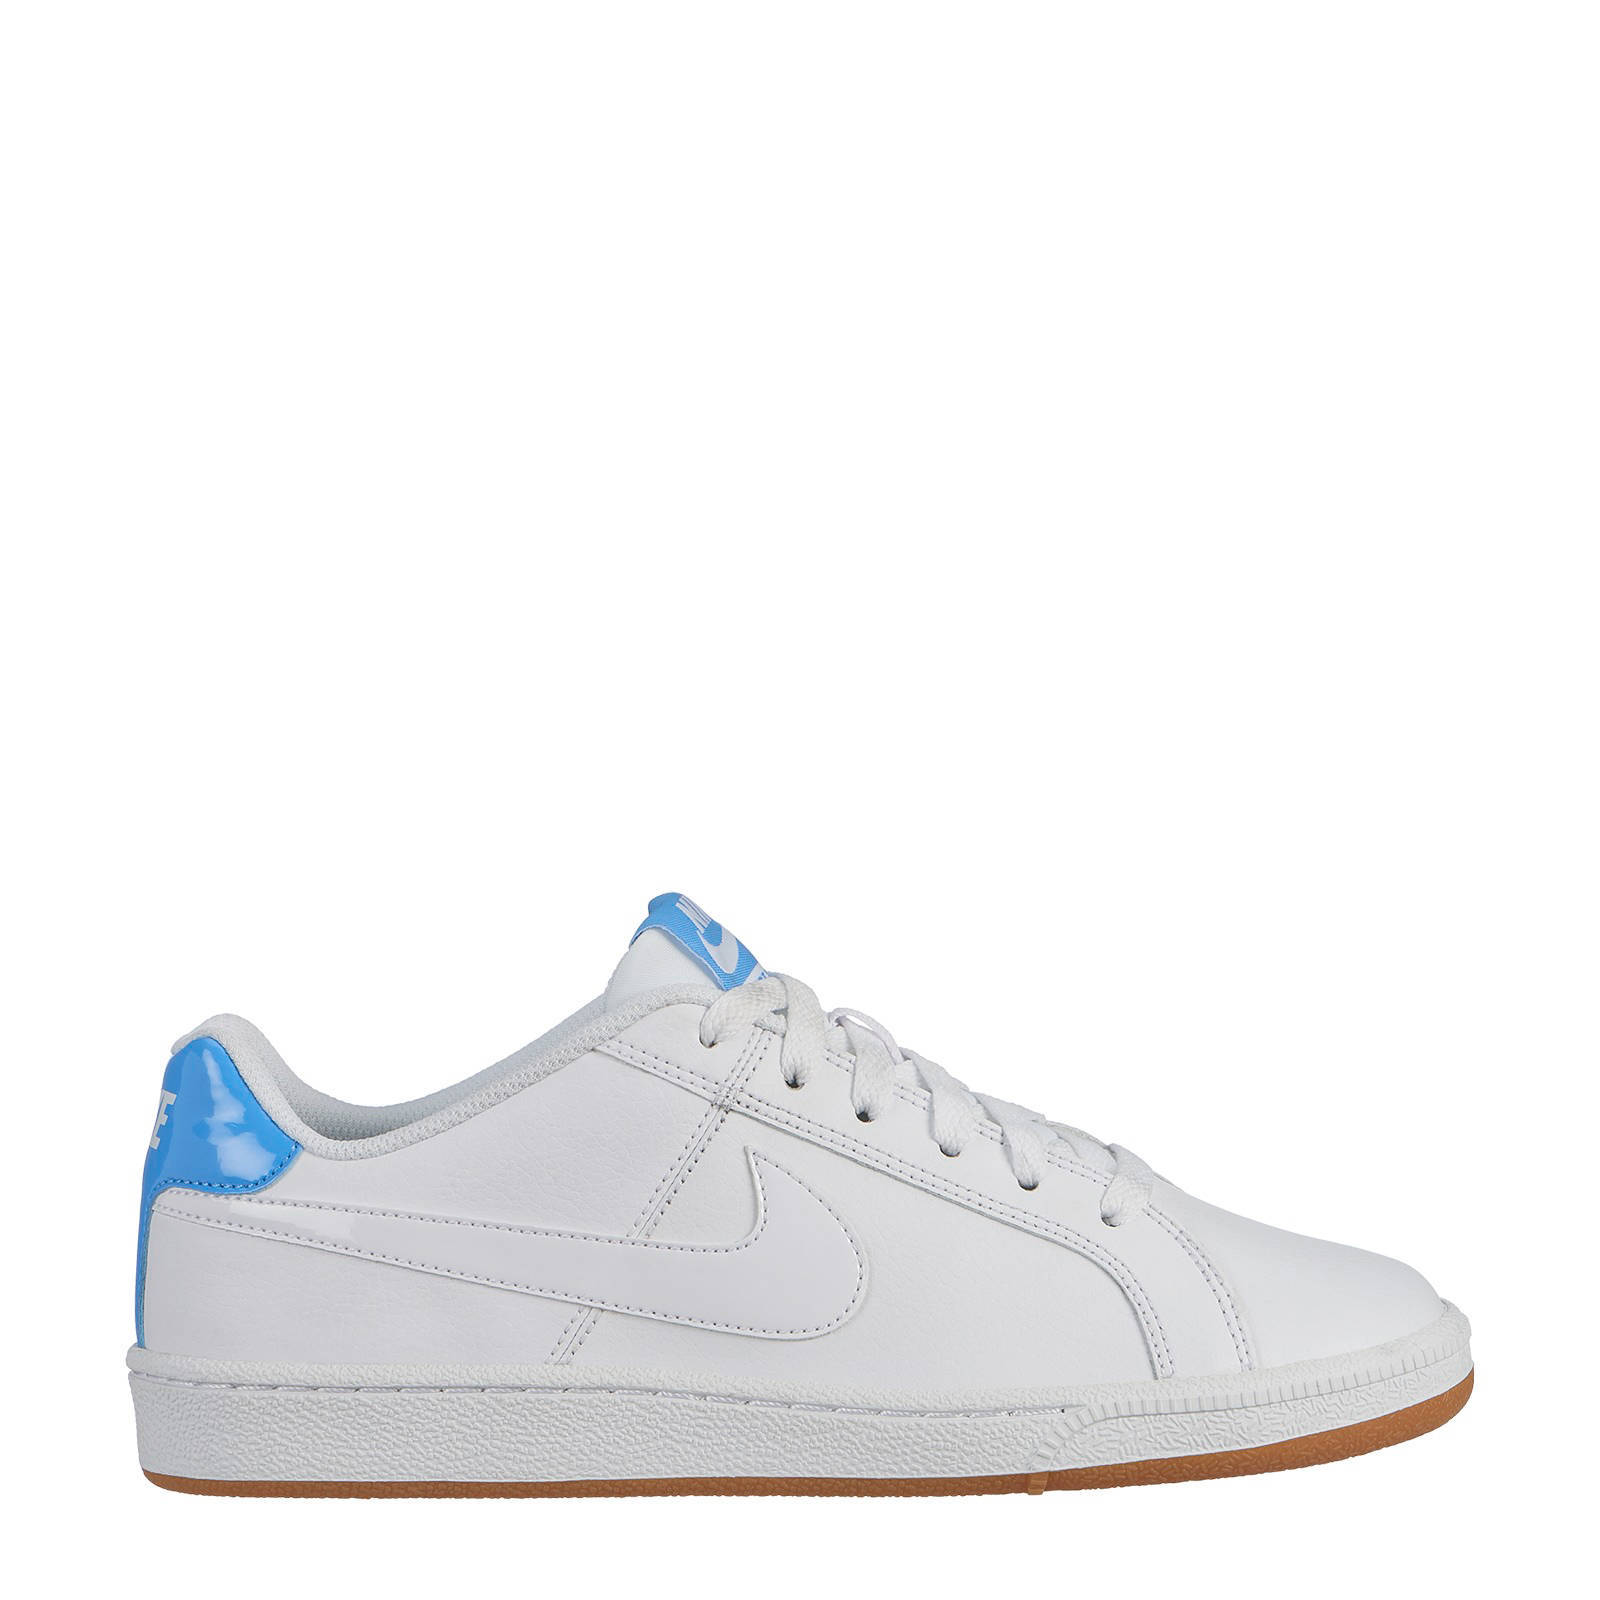 Court Royale sneakers wit/blauw